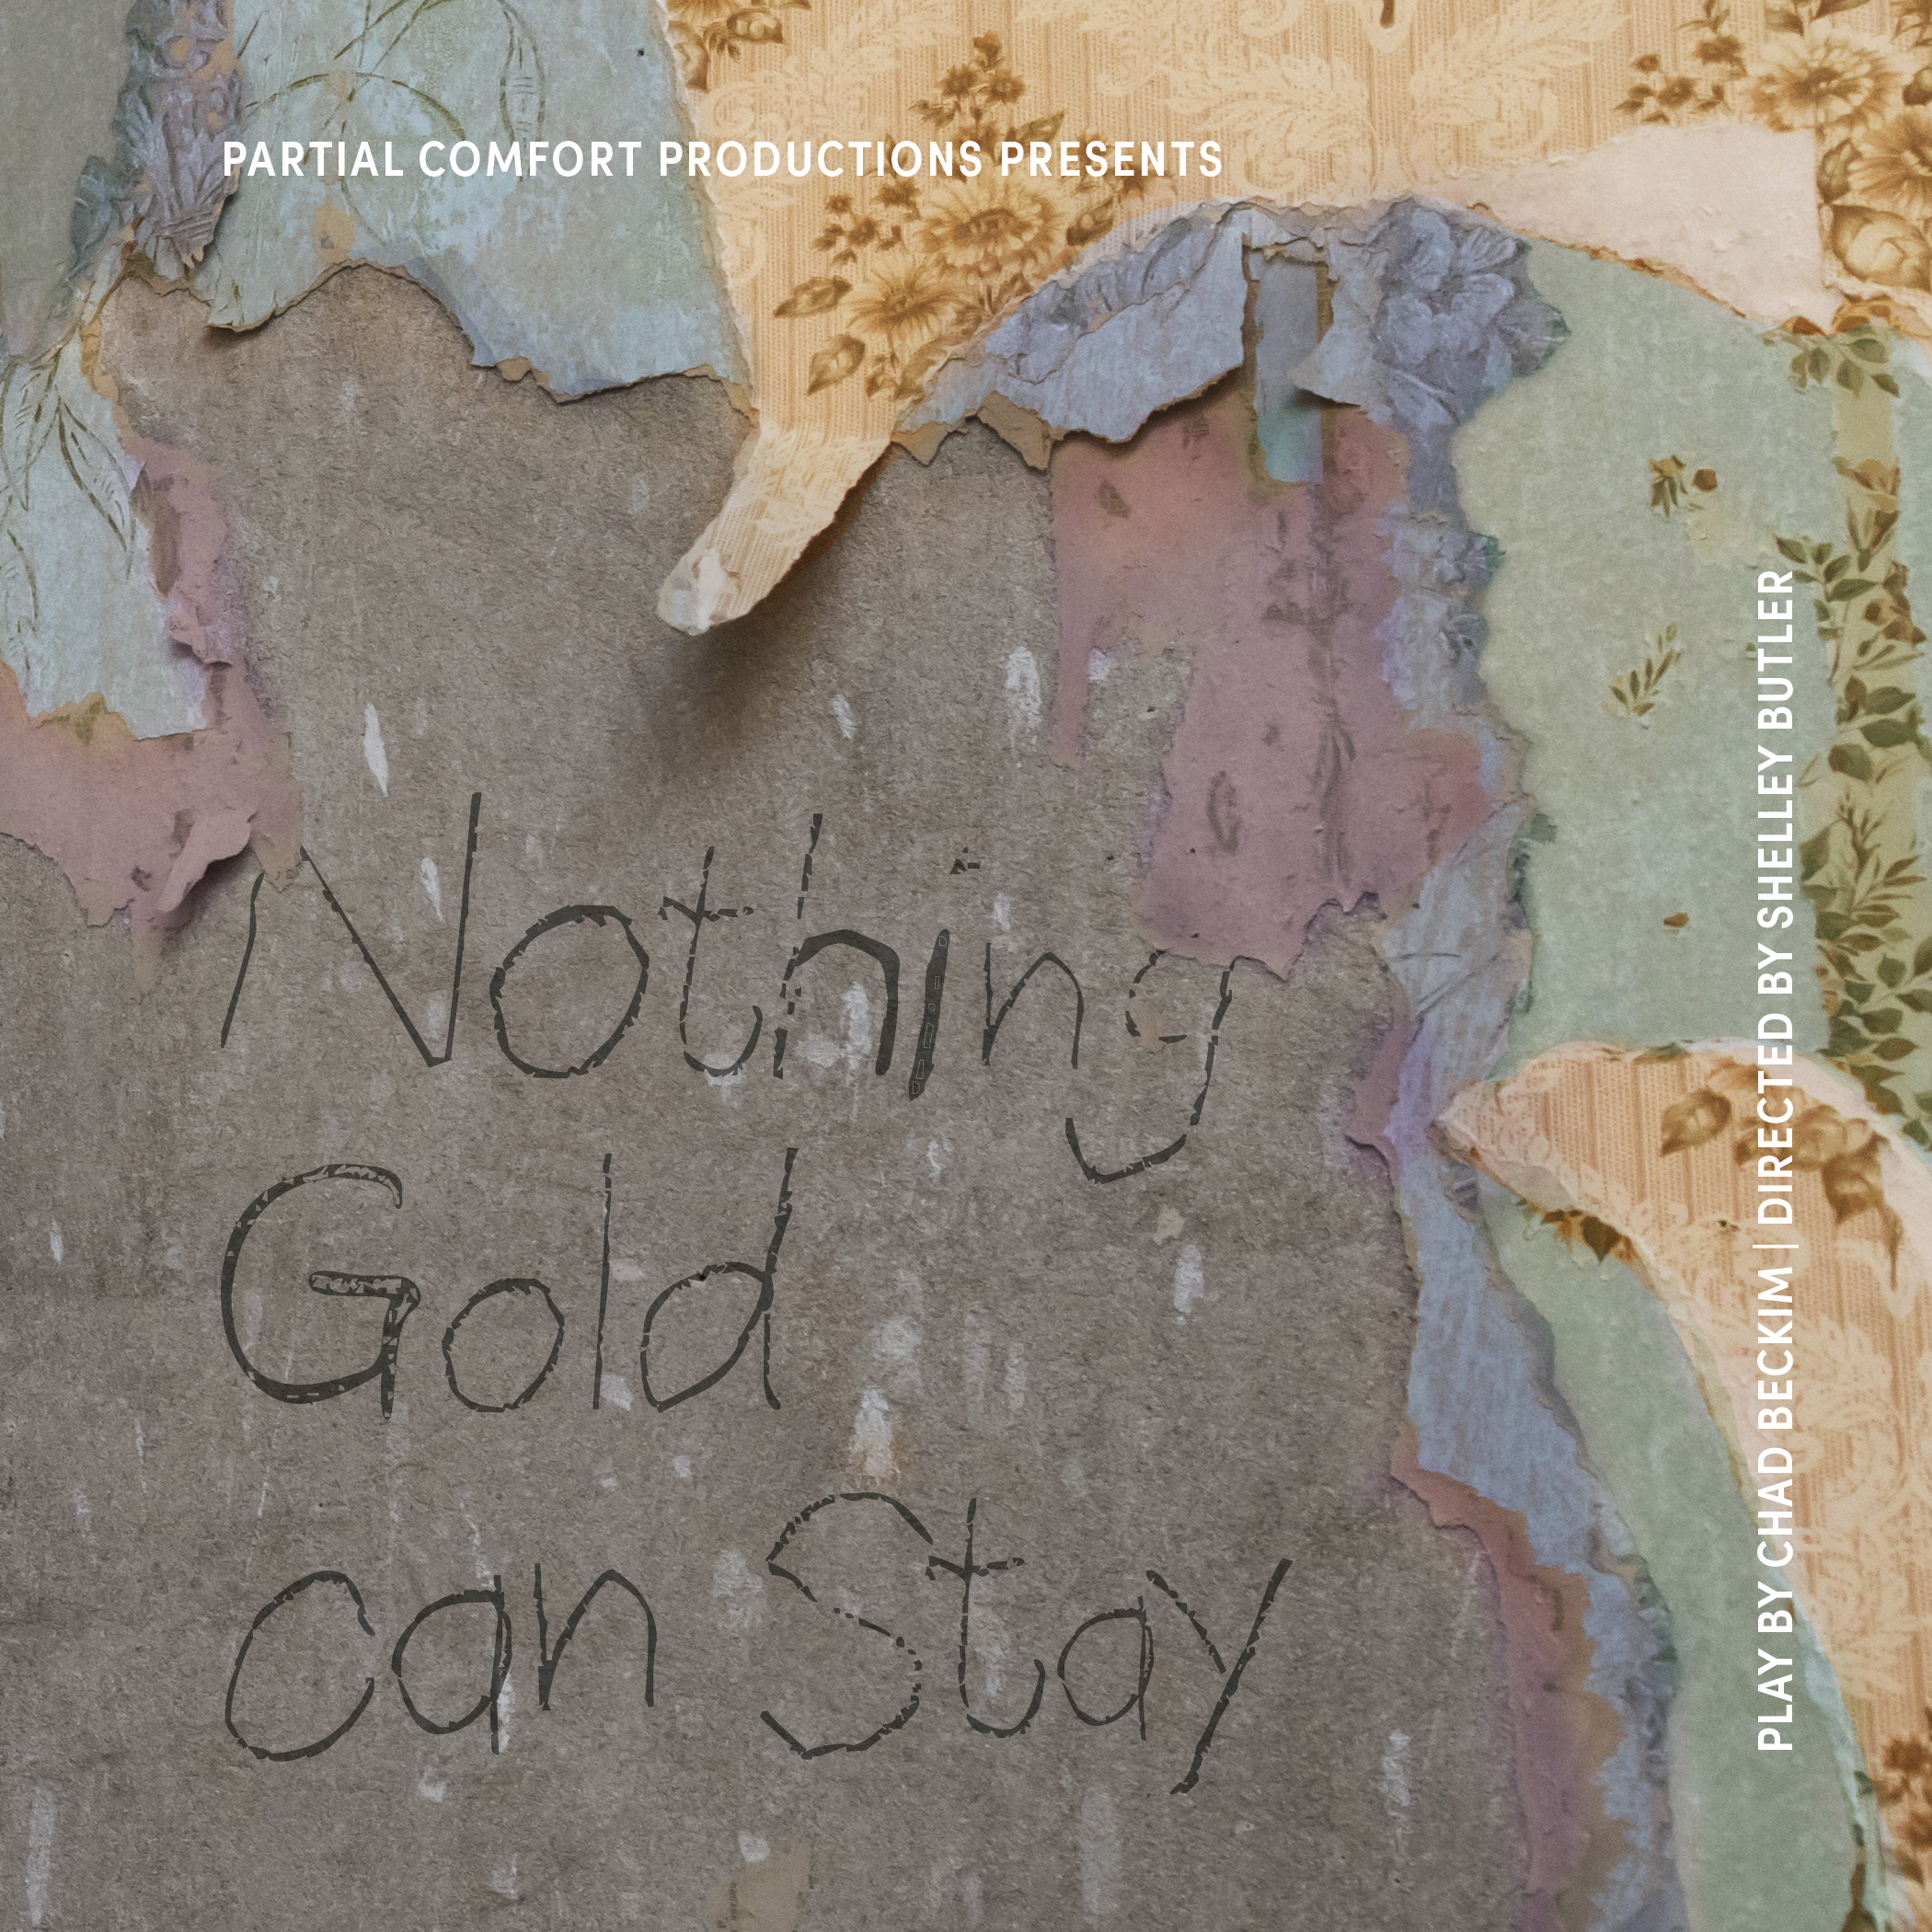 Mixed materials and wallpapers torn off a wall where 'Nothing Gold Can Stay' is etched in a handwritten font.